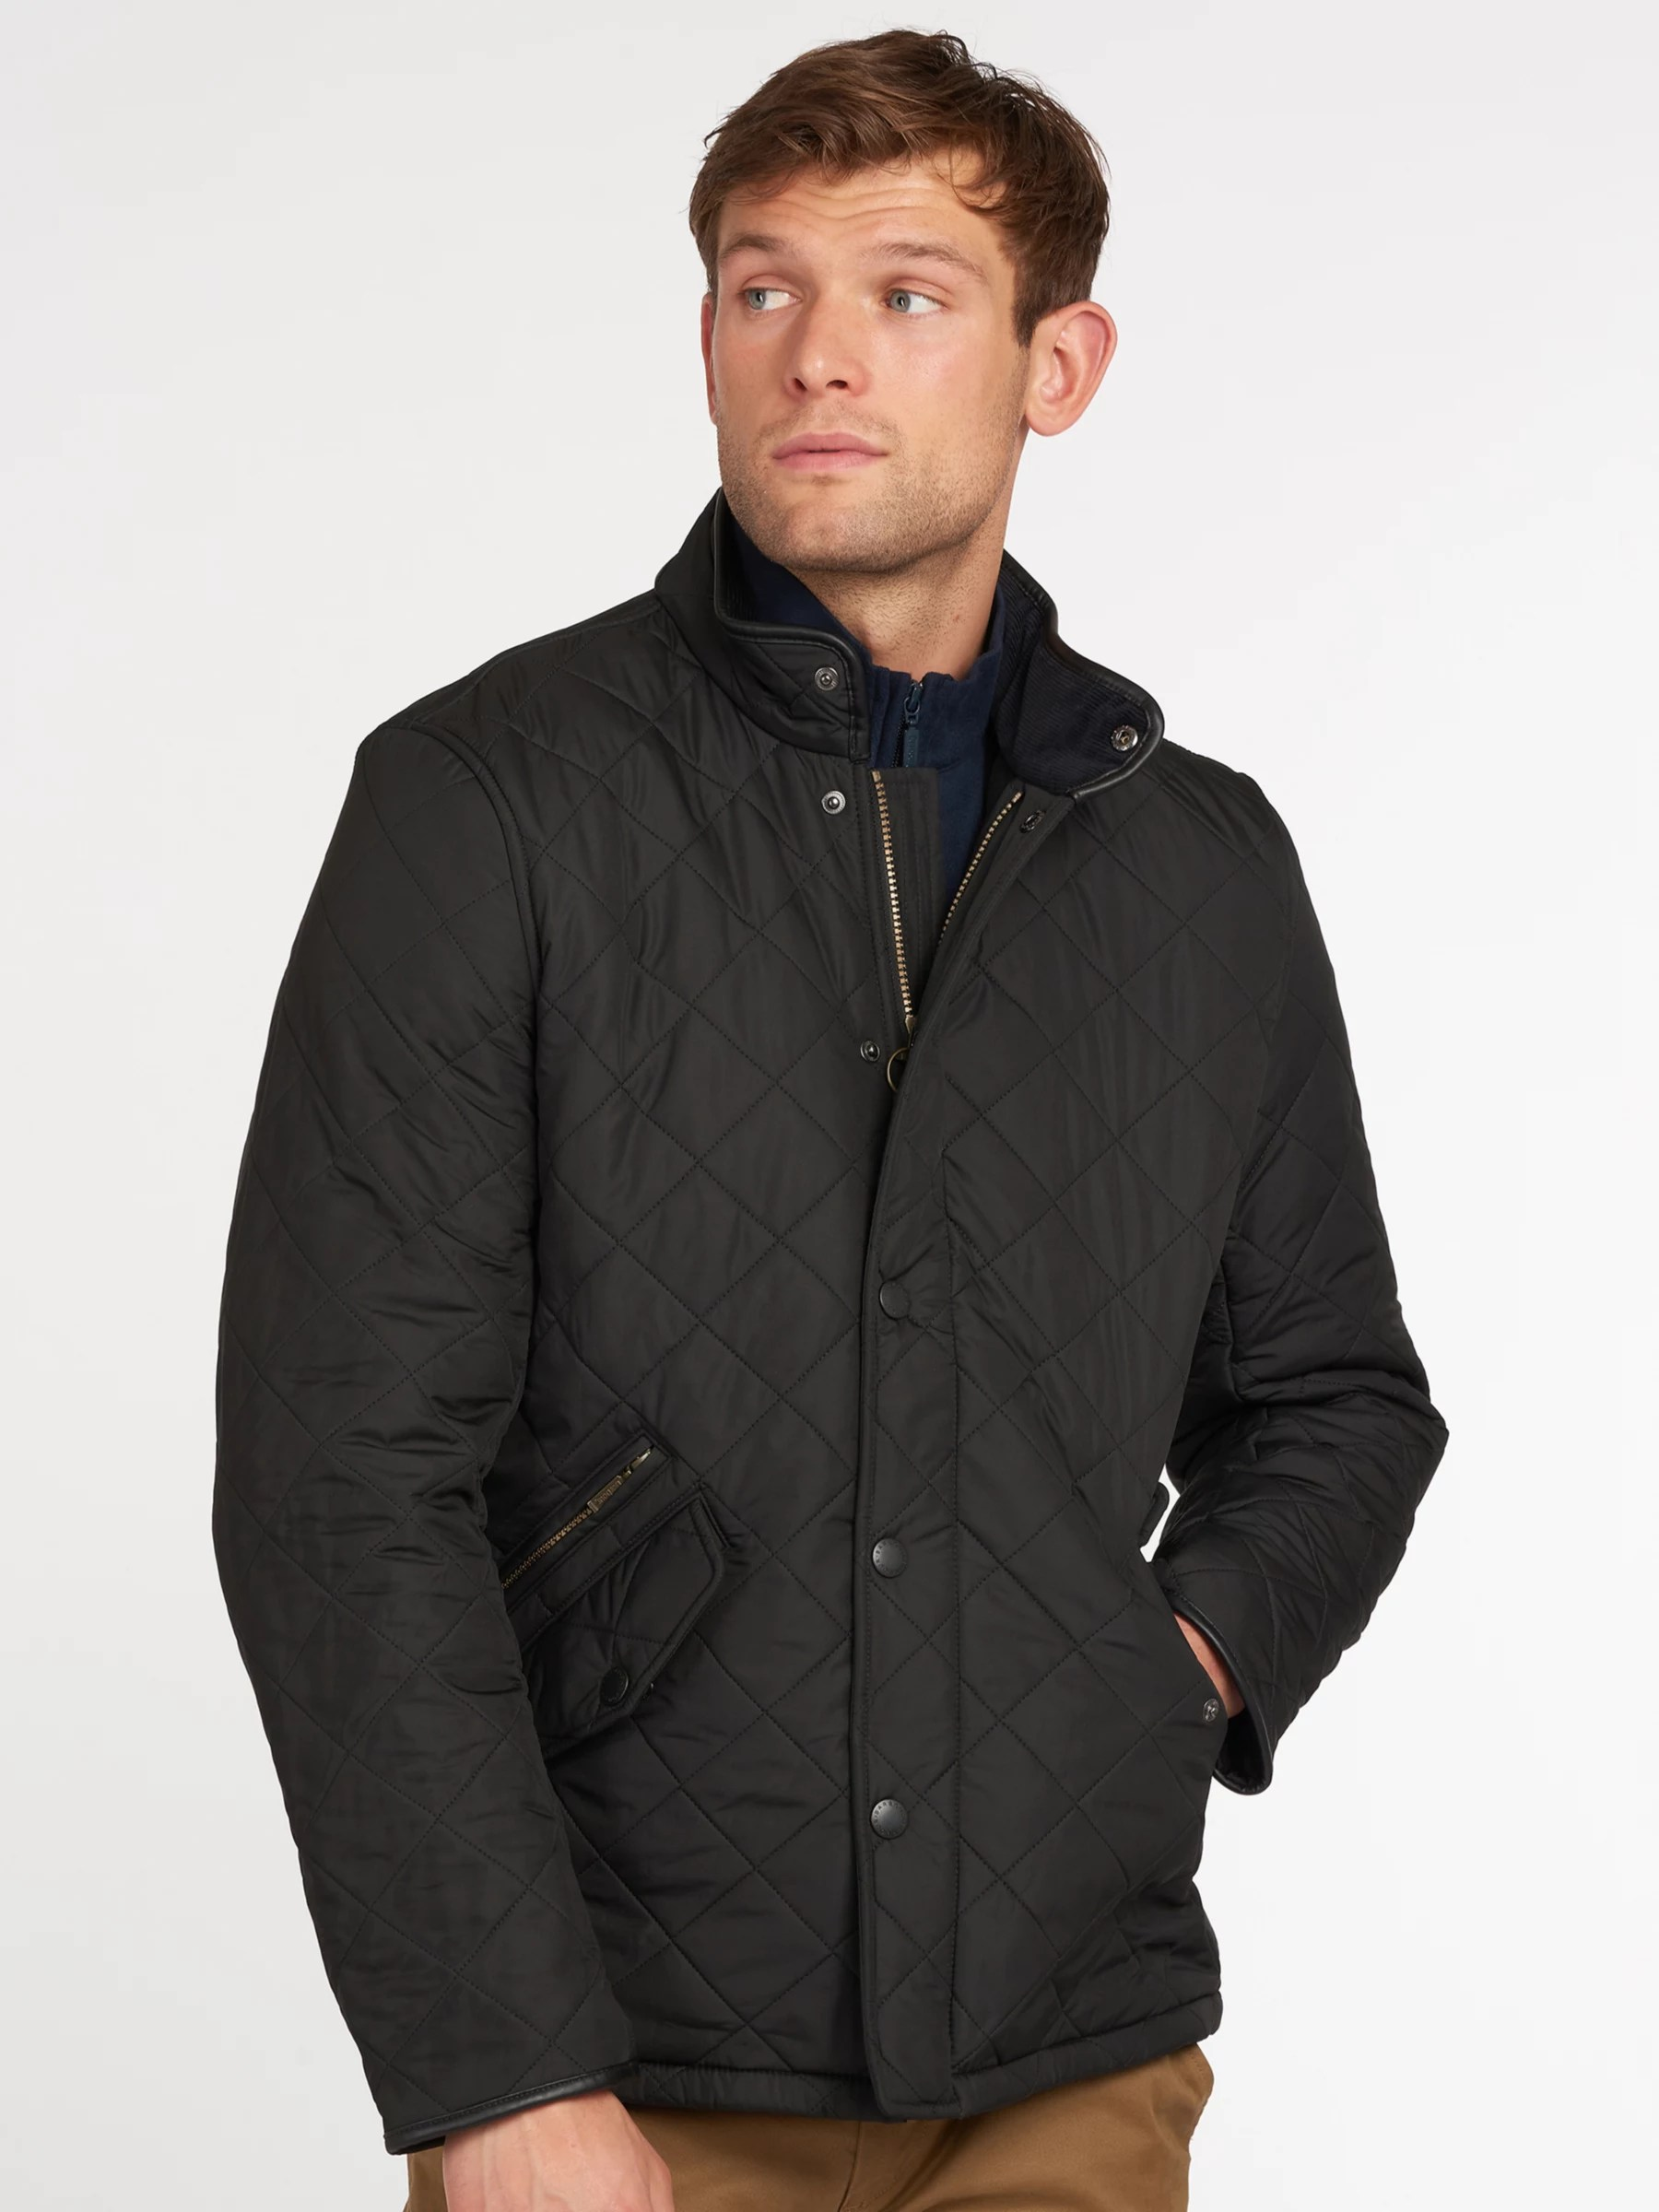 Buy Barbour Lifestyle Powell Quilted Jacket | John Lewis